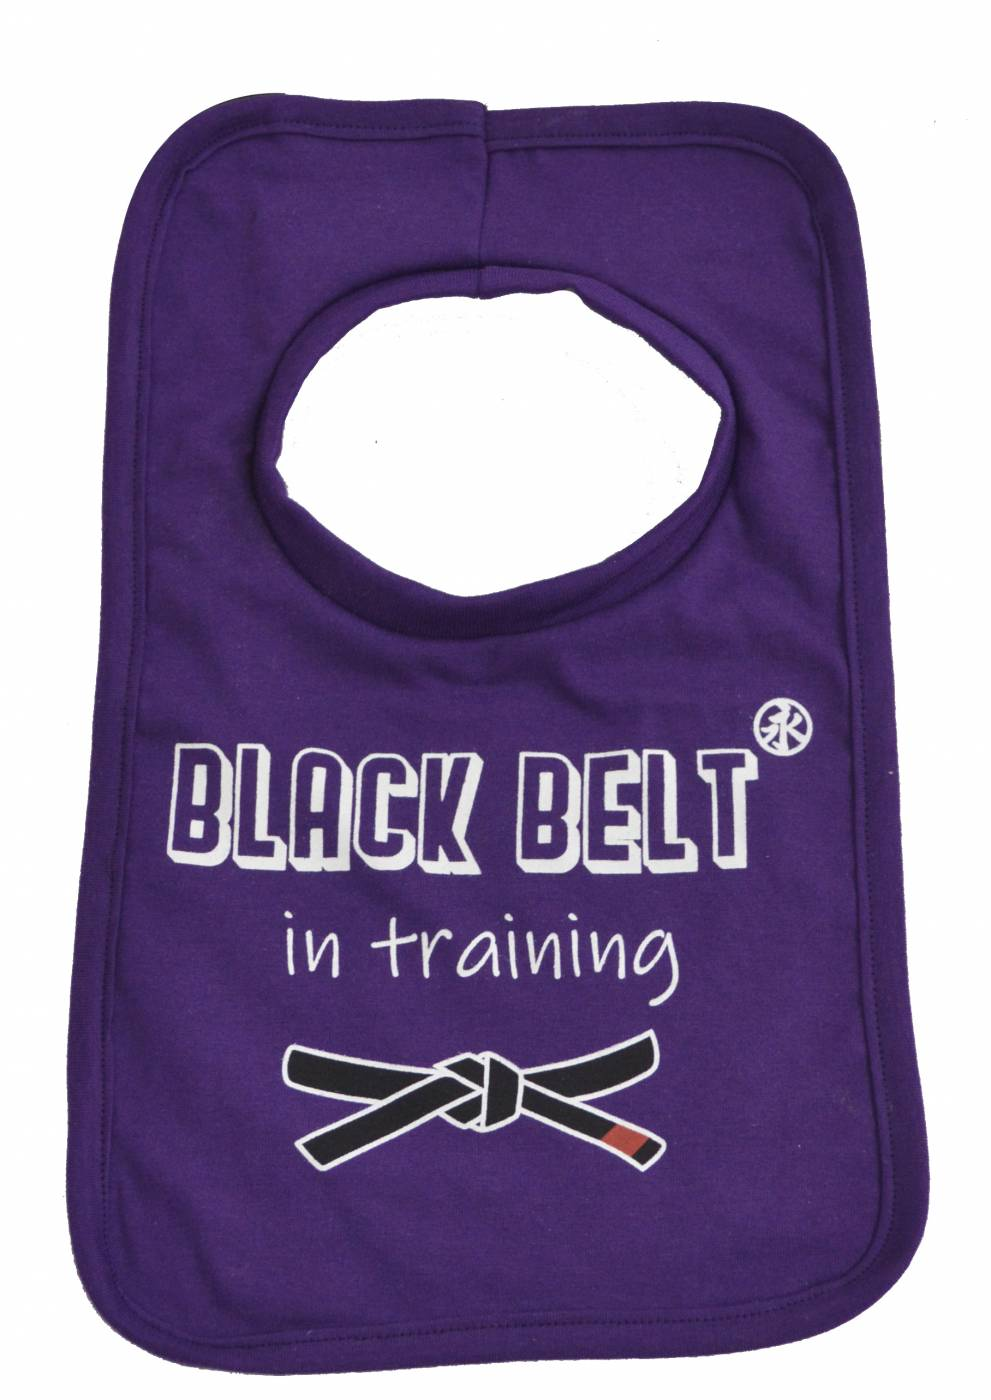 Black Belt in Training Bib - Purple